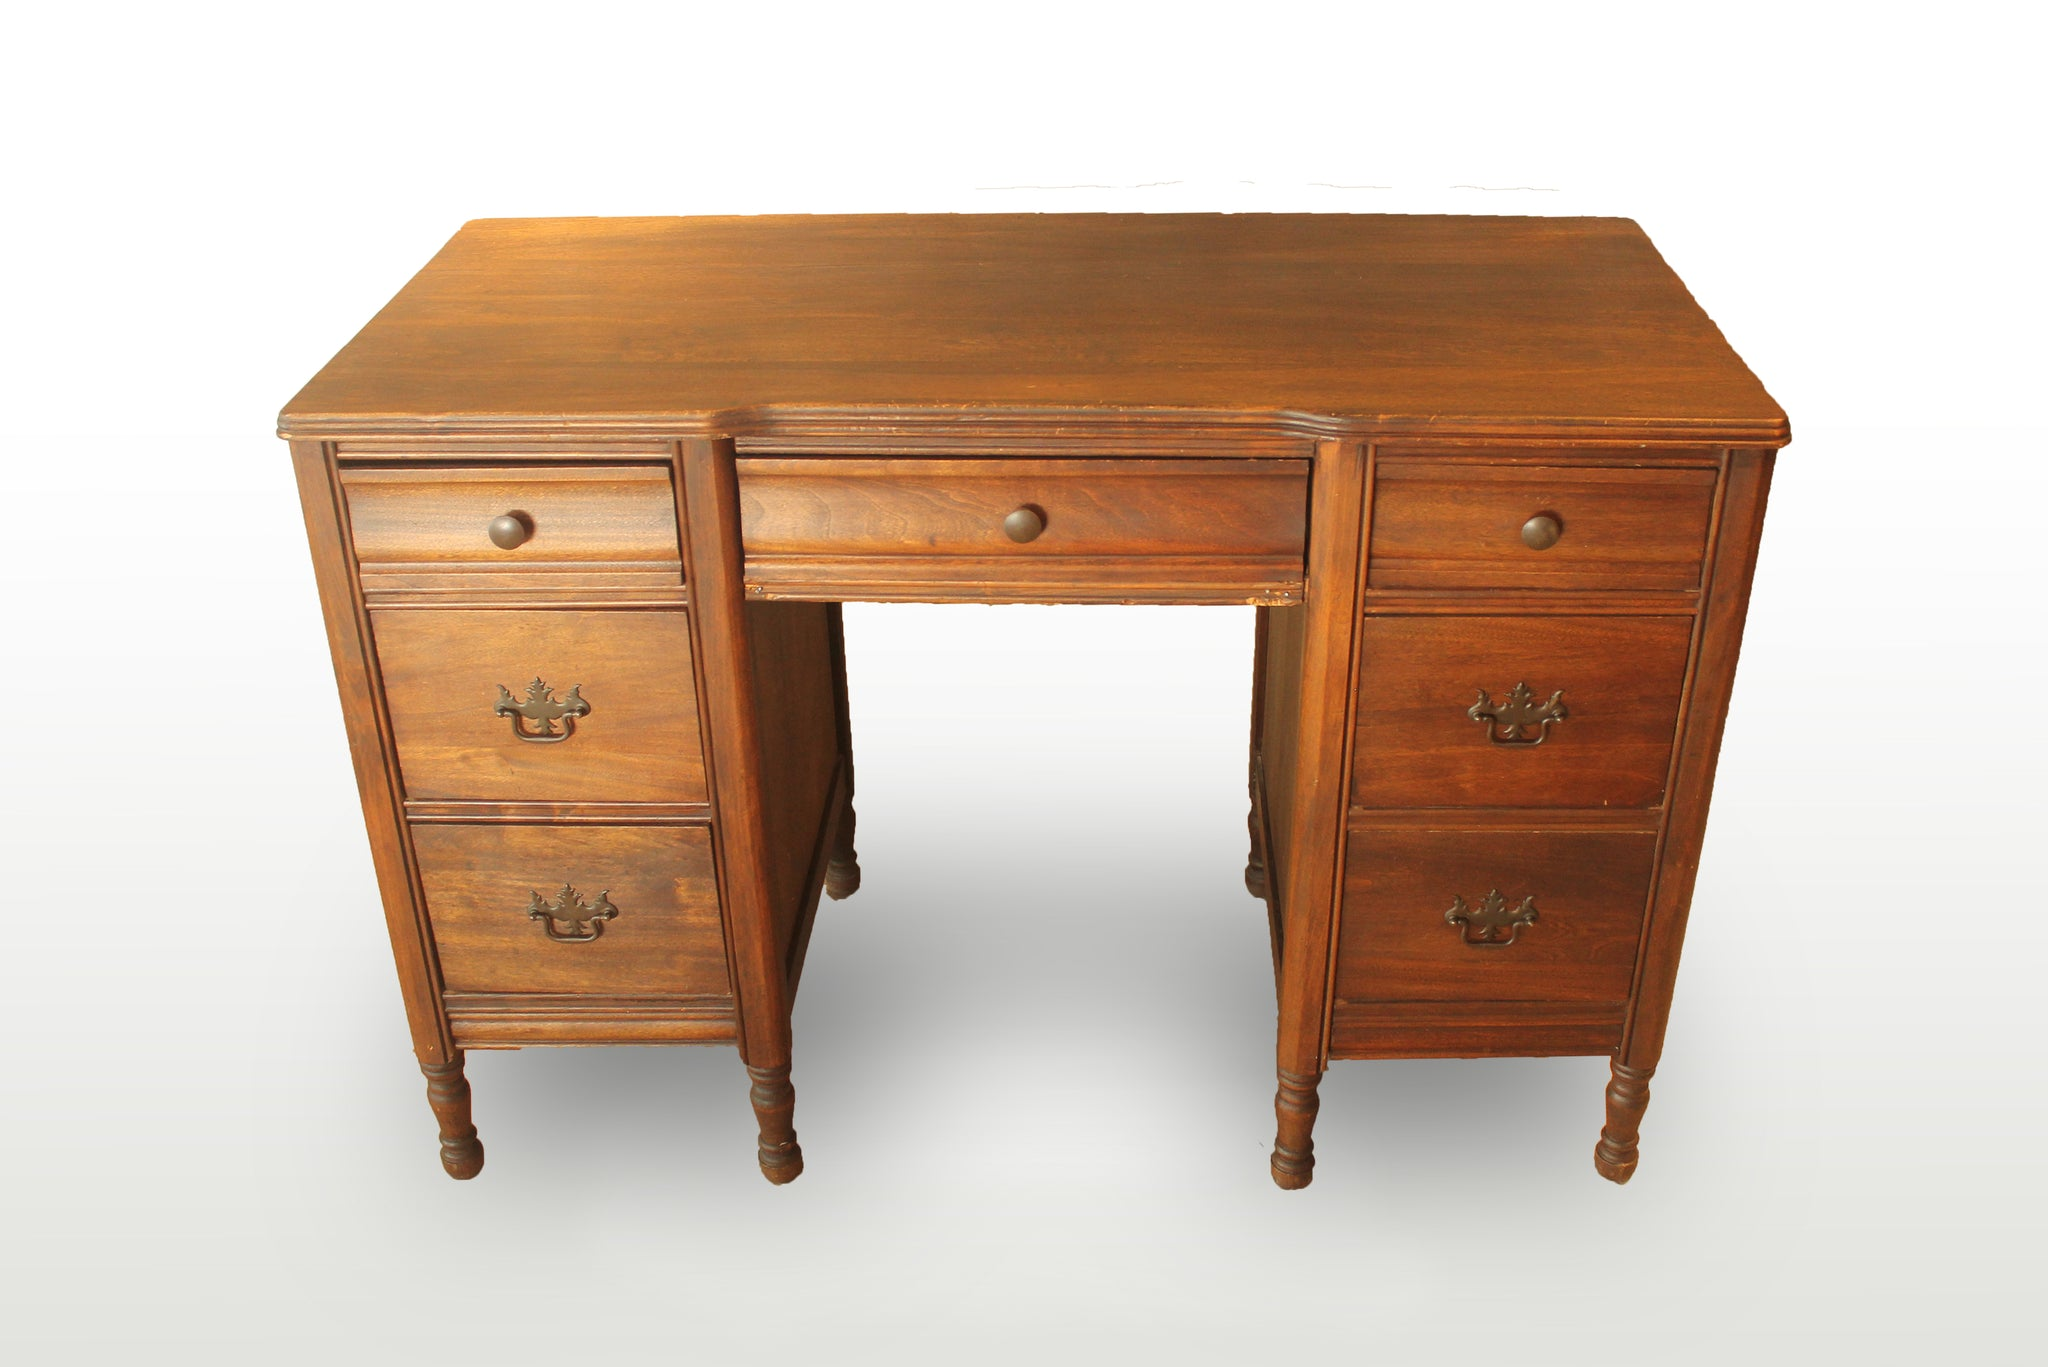 Writing Desk with 7 Drawers - Repro Furniture